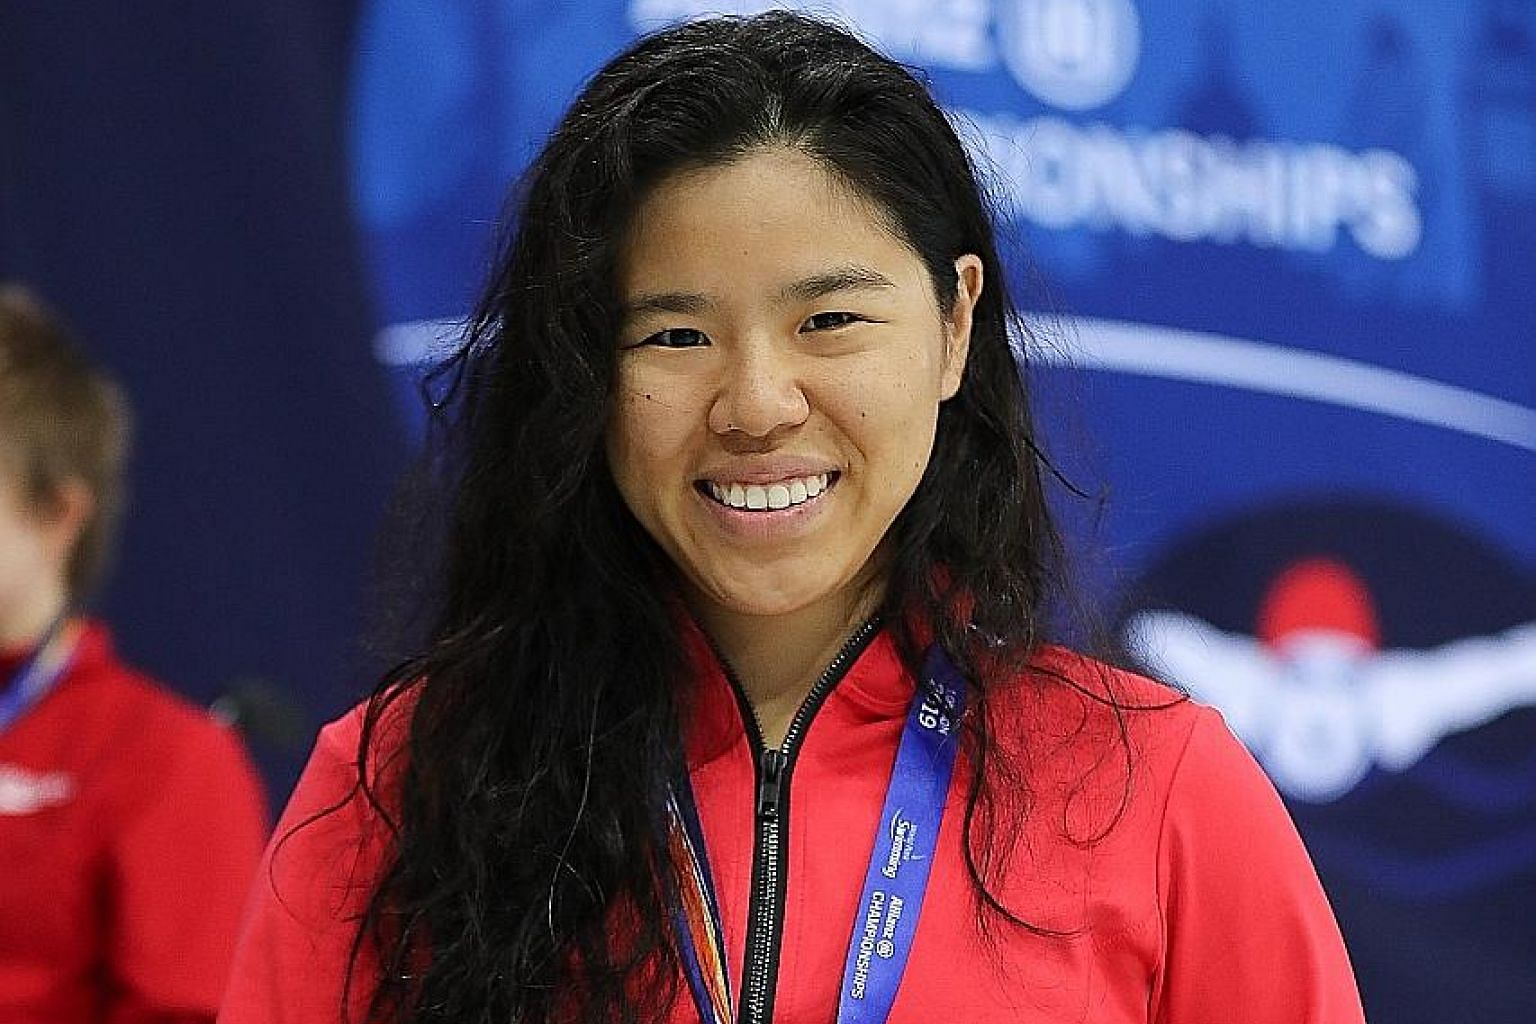 Nine years after her first world title, Yip Pin Xiu is finally a world champion again. The 27-year-old Singaporean, who has muscular dystrophy, which leads to progressive weakening of the muscles, clinched gold in the women's 100m backstroke S2 event